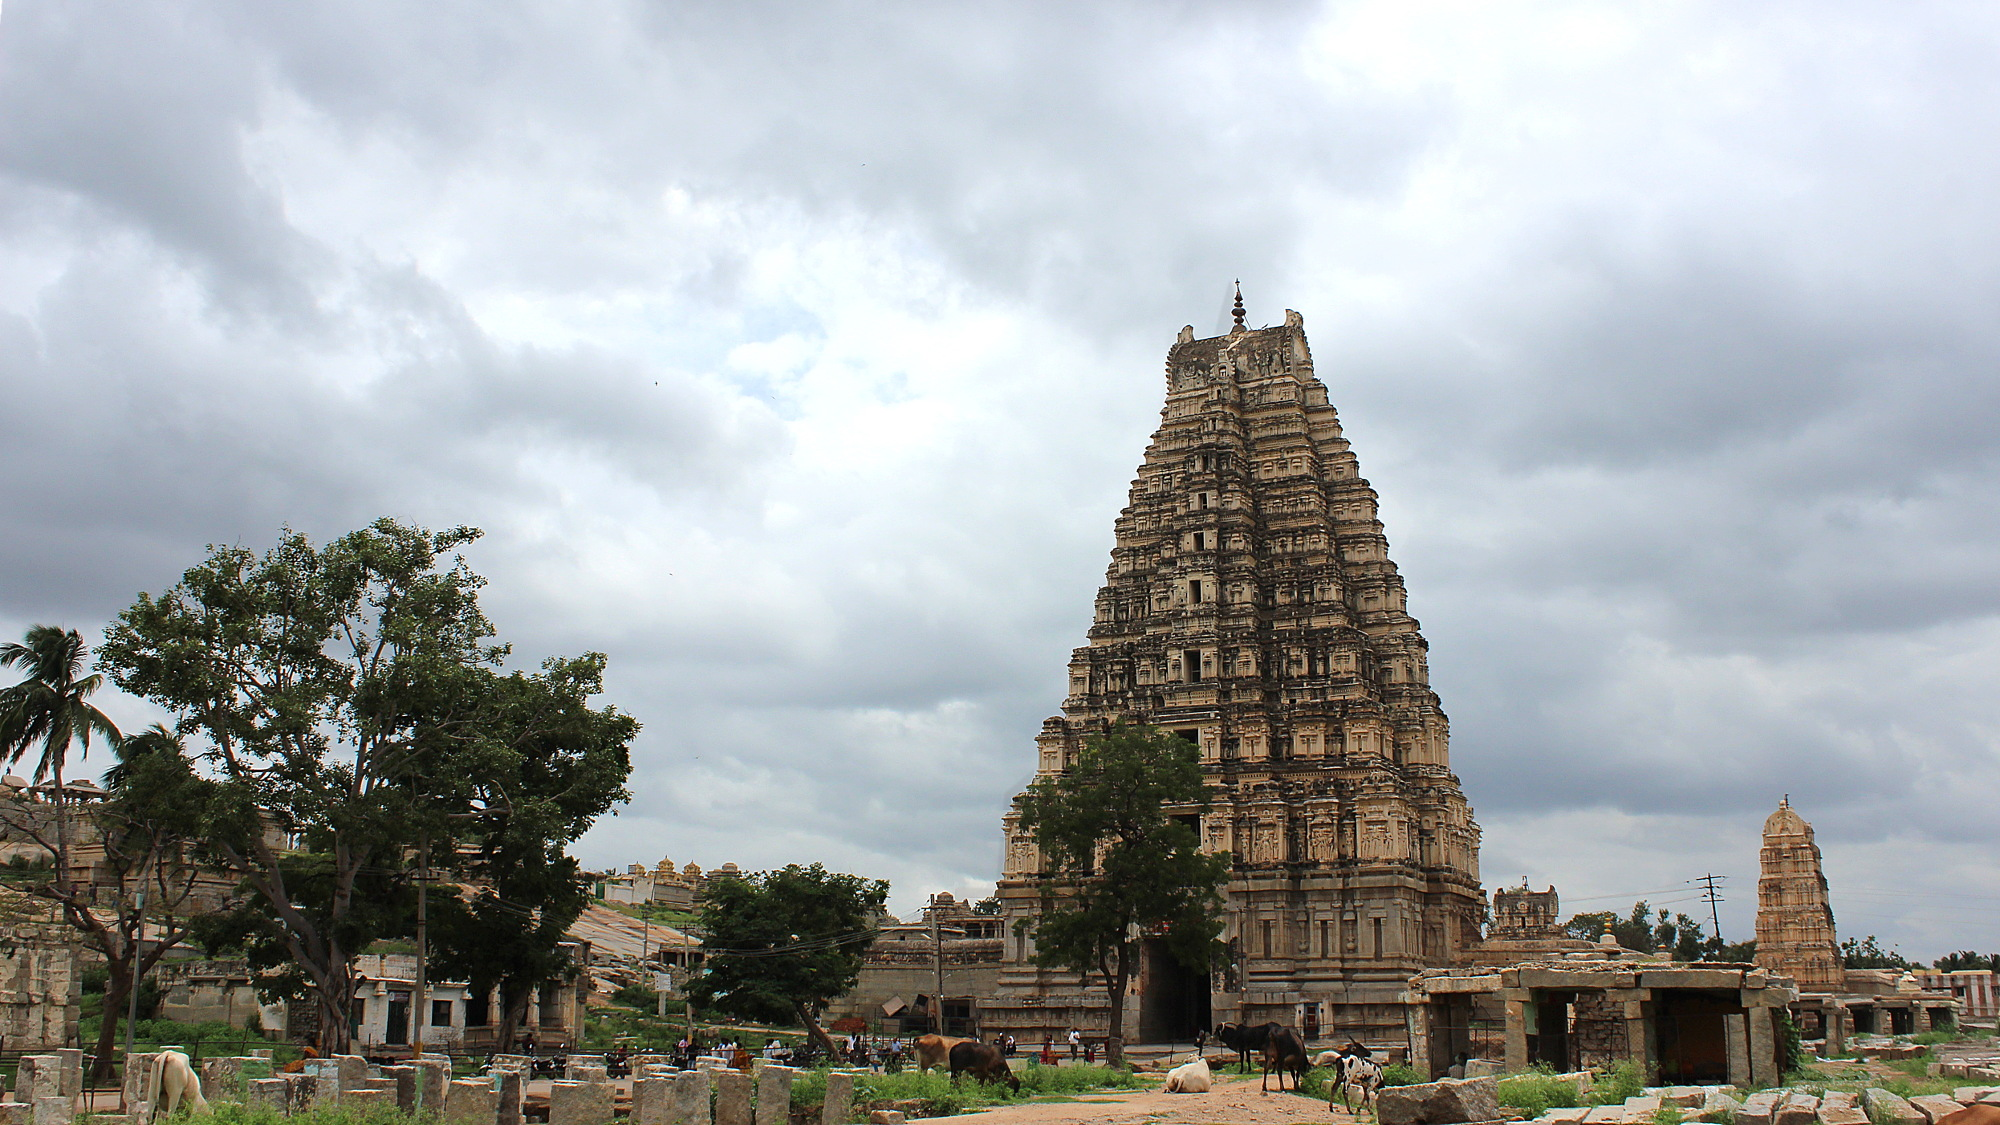 The Virupaksha Temple tower in Hampi with grey clouds in the background. The temple was built when Hampi was the capital of Vijayanagar empire.